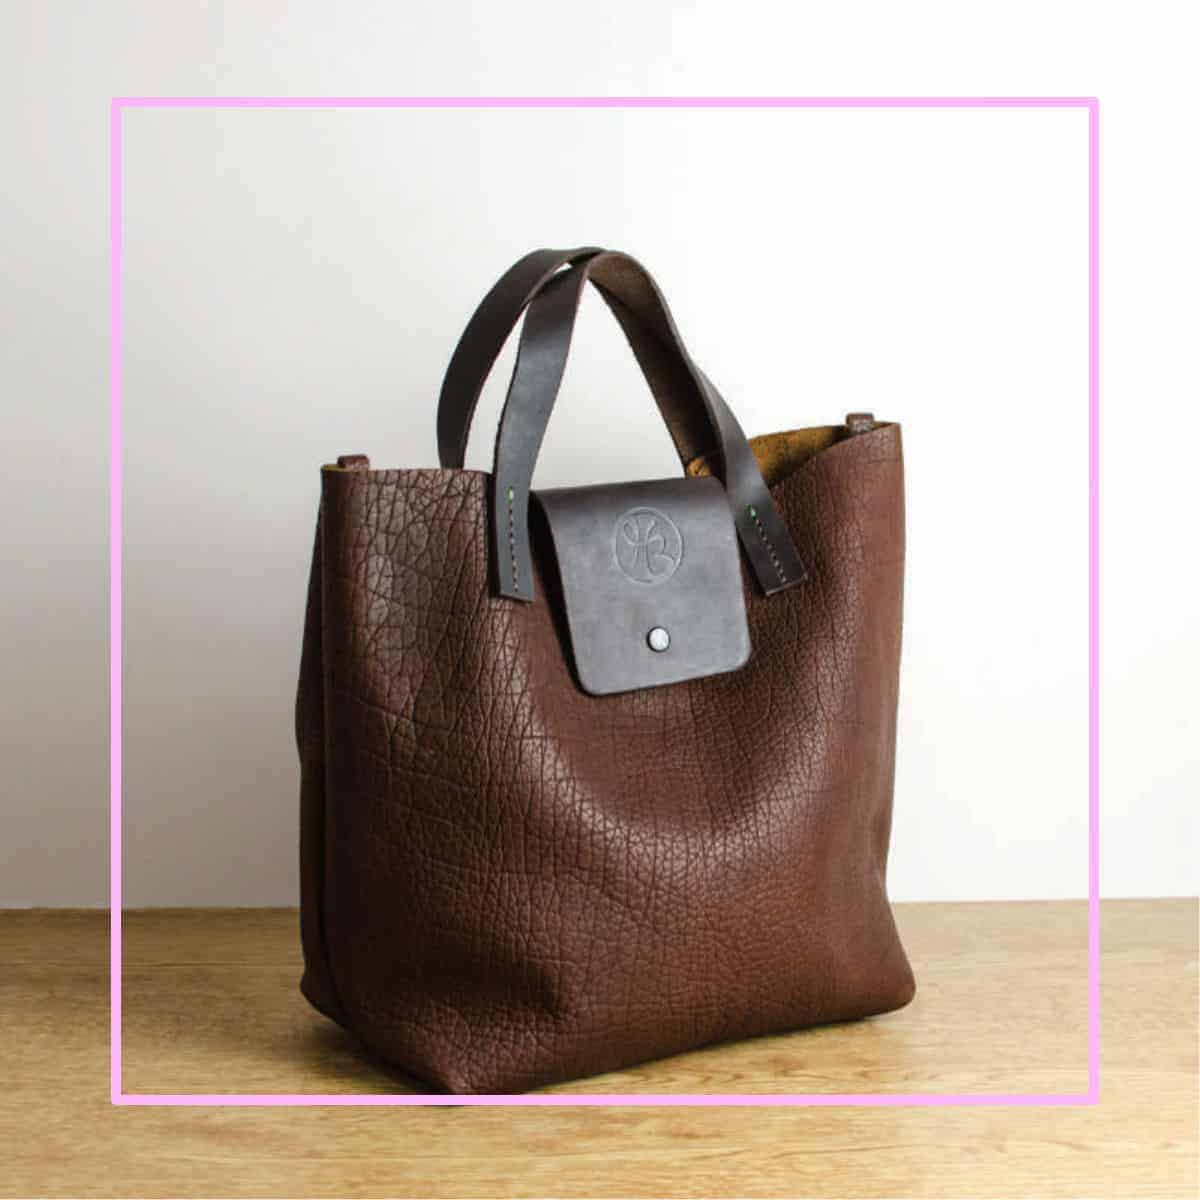 bison leather tote pink frame heather borg